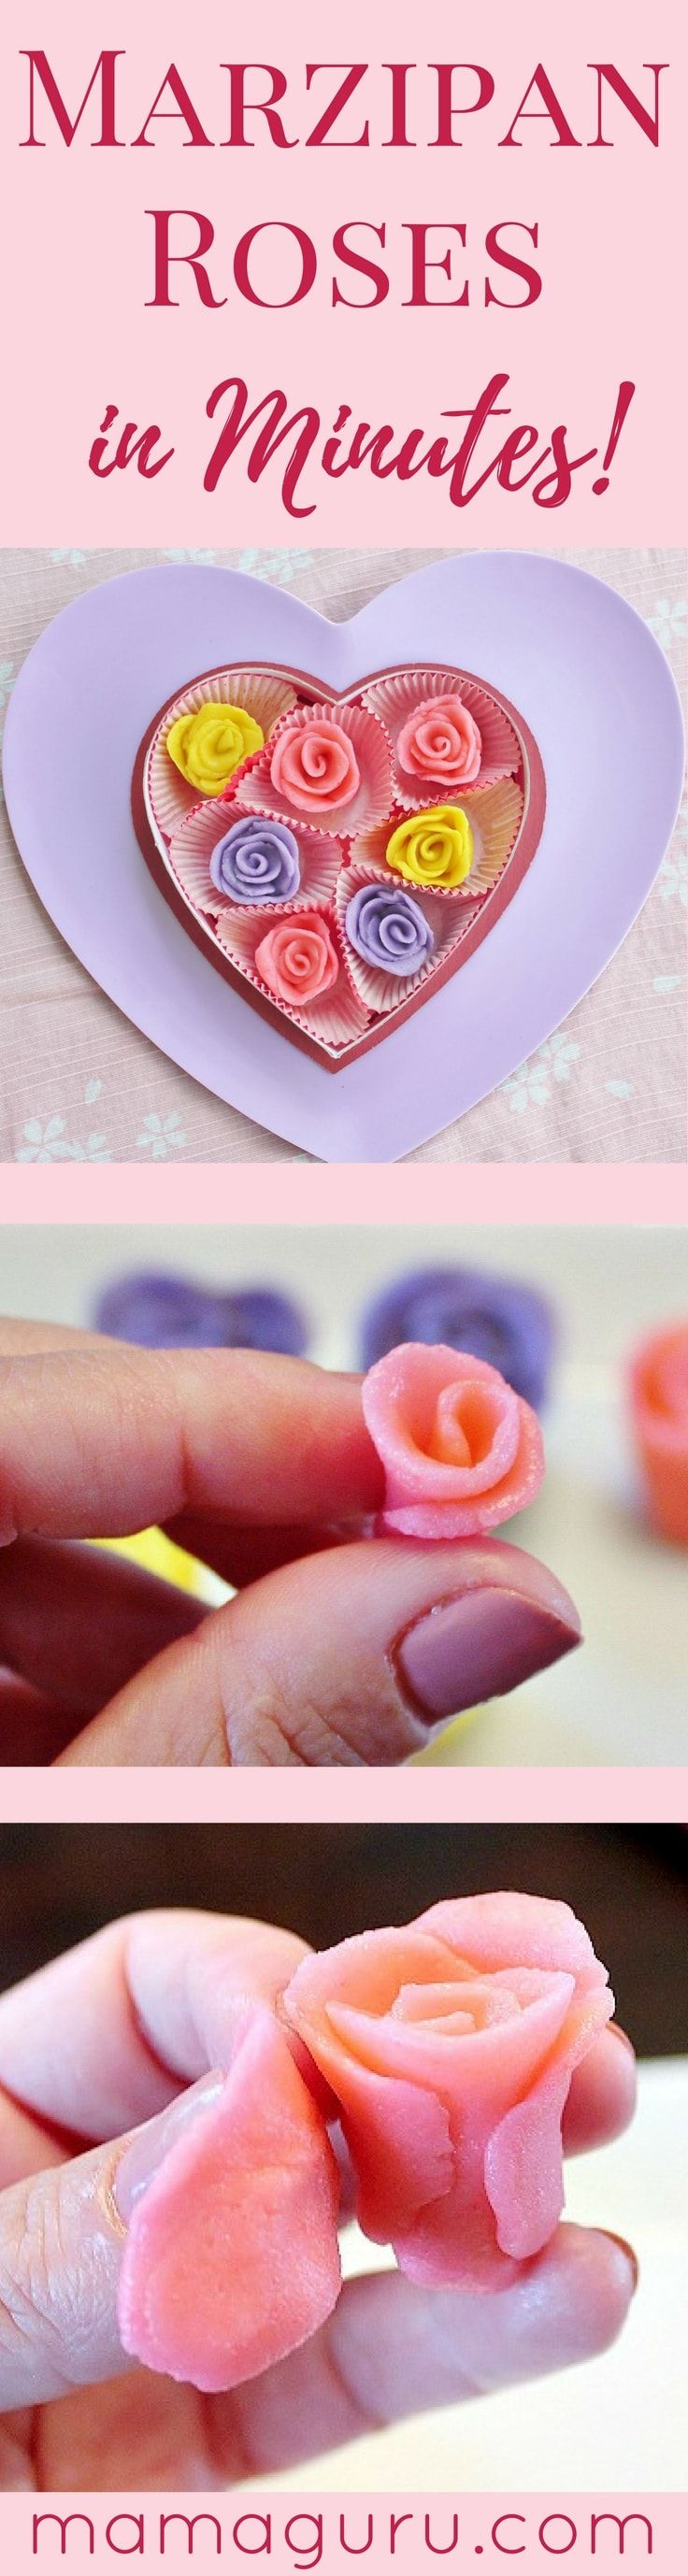 Marzipan Roses ♥ Cake Decorating ♥ Valentine's Day ♥ Marzipan Recipe ♥ Homemade Gift